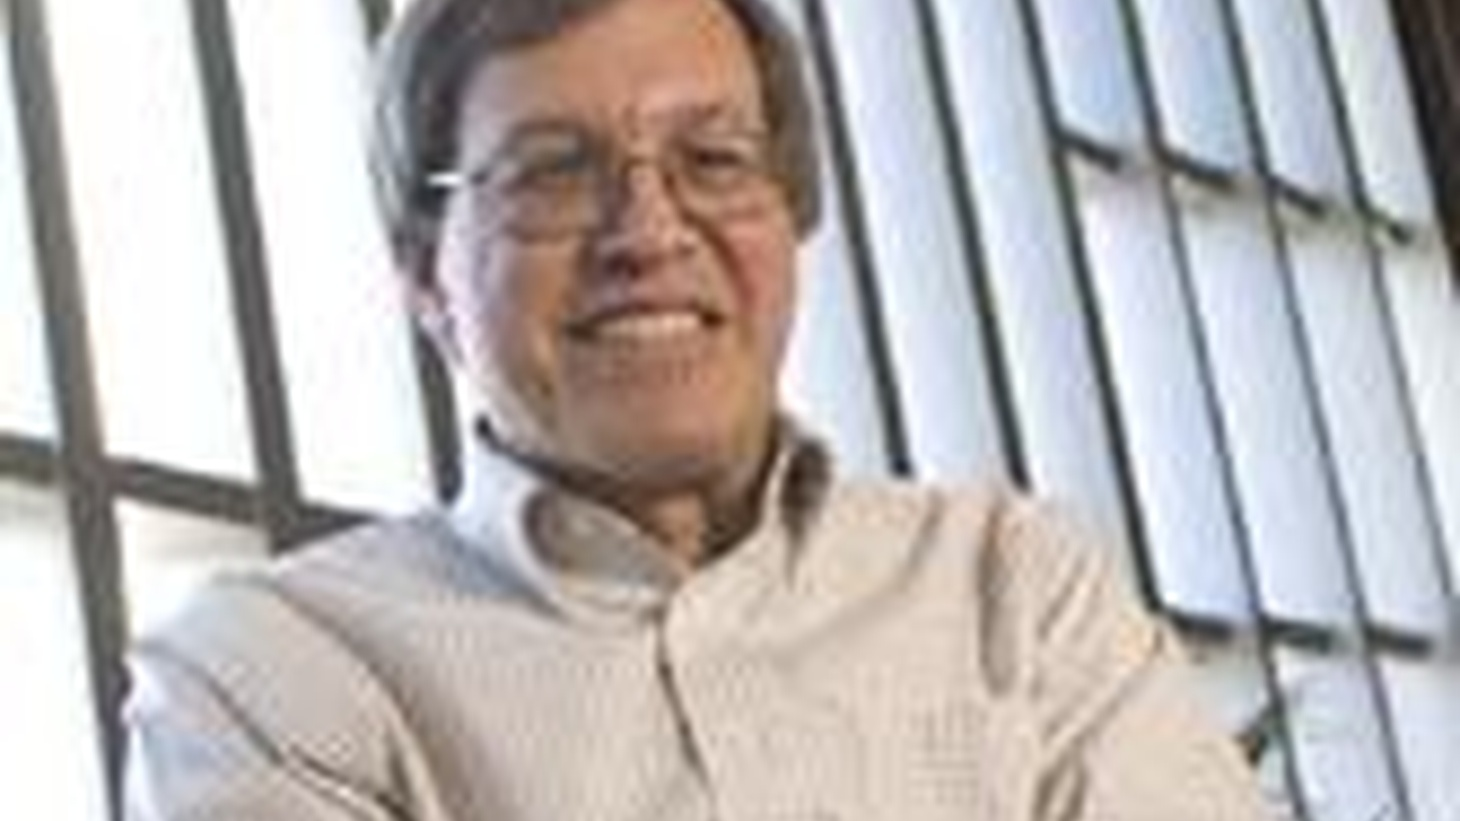 A nationally known Constitutional scholar has been hired, then fired as the founding dean of UC Irvine's new law school. Liberal Professor Irwin Chemerinsky won't get the job and even some prominent conservatives call it a violation of academic freedom. We'll hear from him and others tonight. On Reporter's Notebook, a go-ahead for California's fight against global warming.